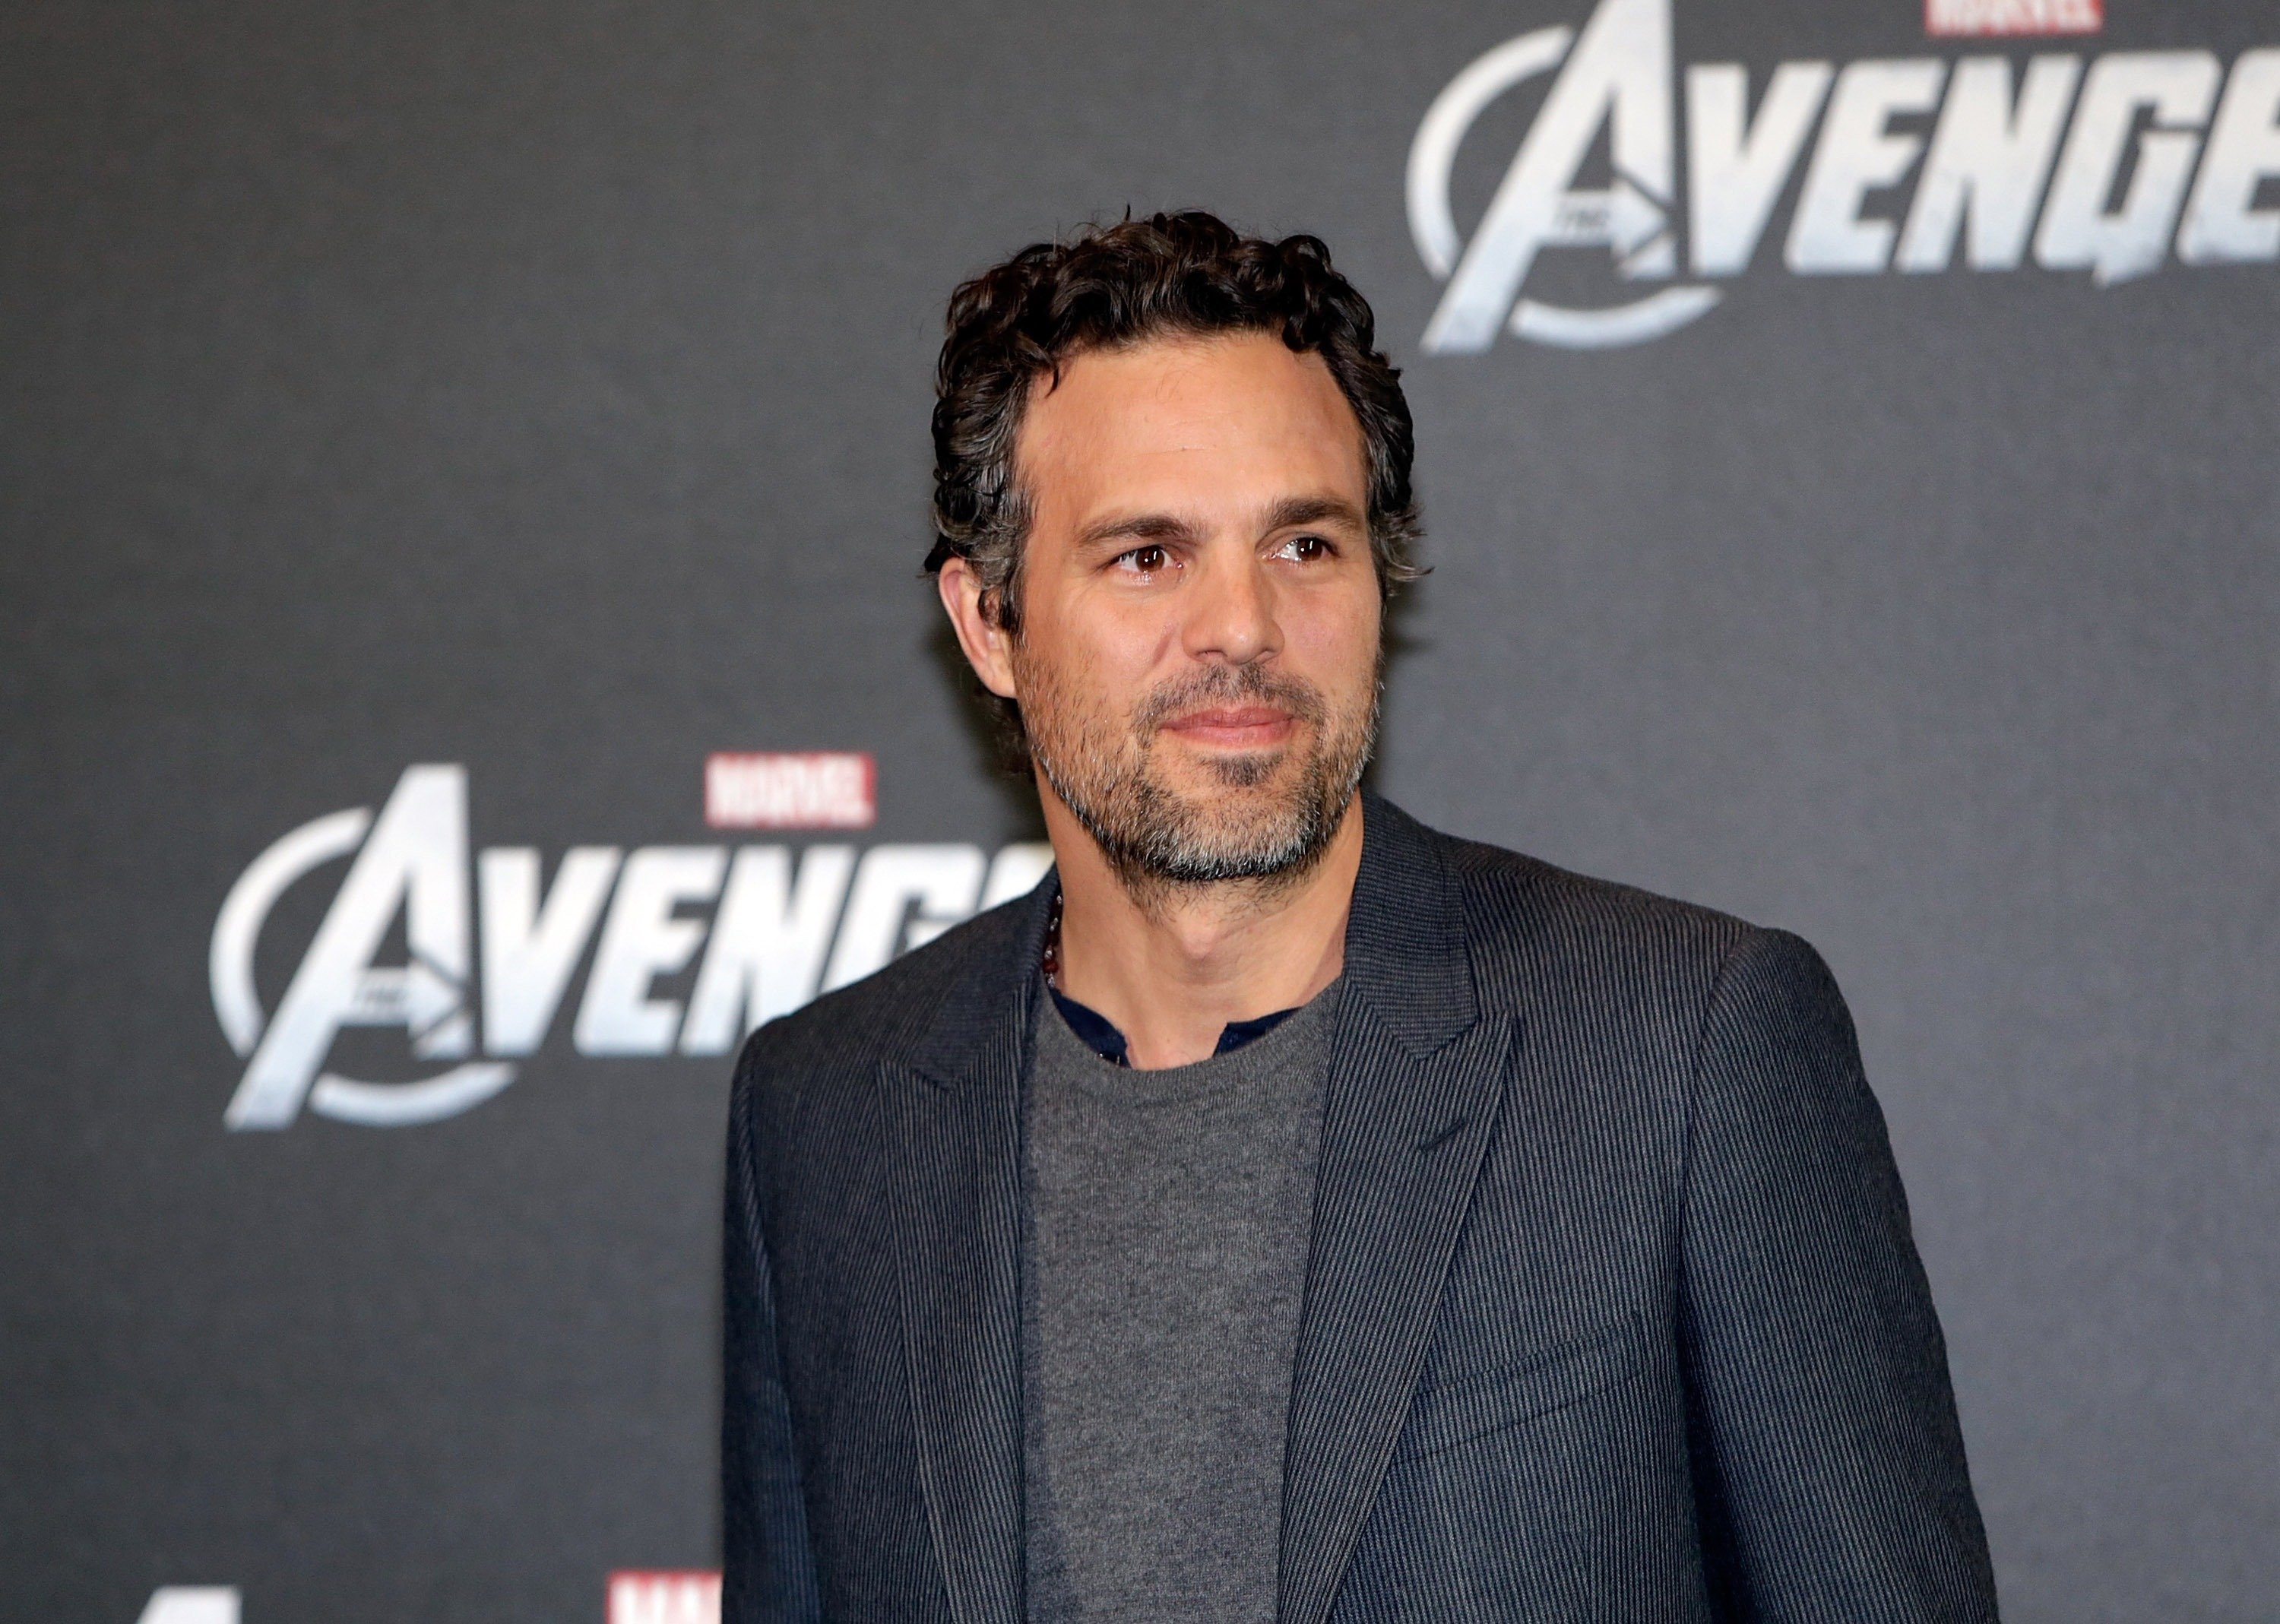 Mark Ruffalo during a 2012 photo call event in Berlin. | Photos: Getty Images